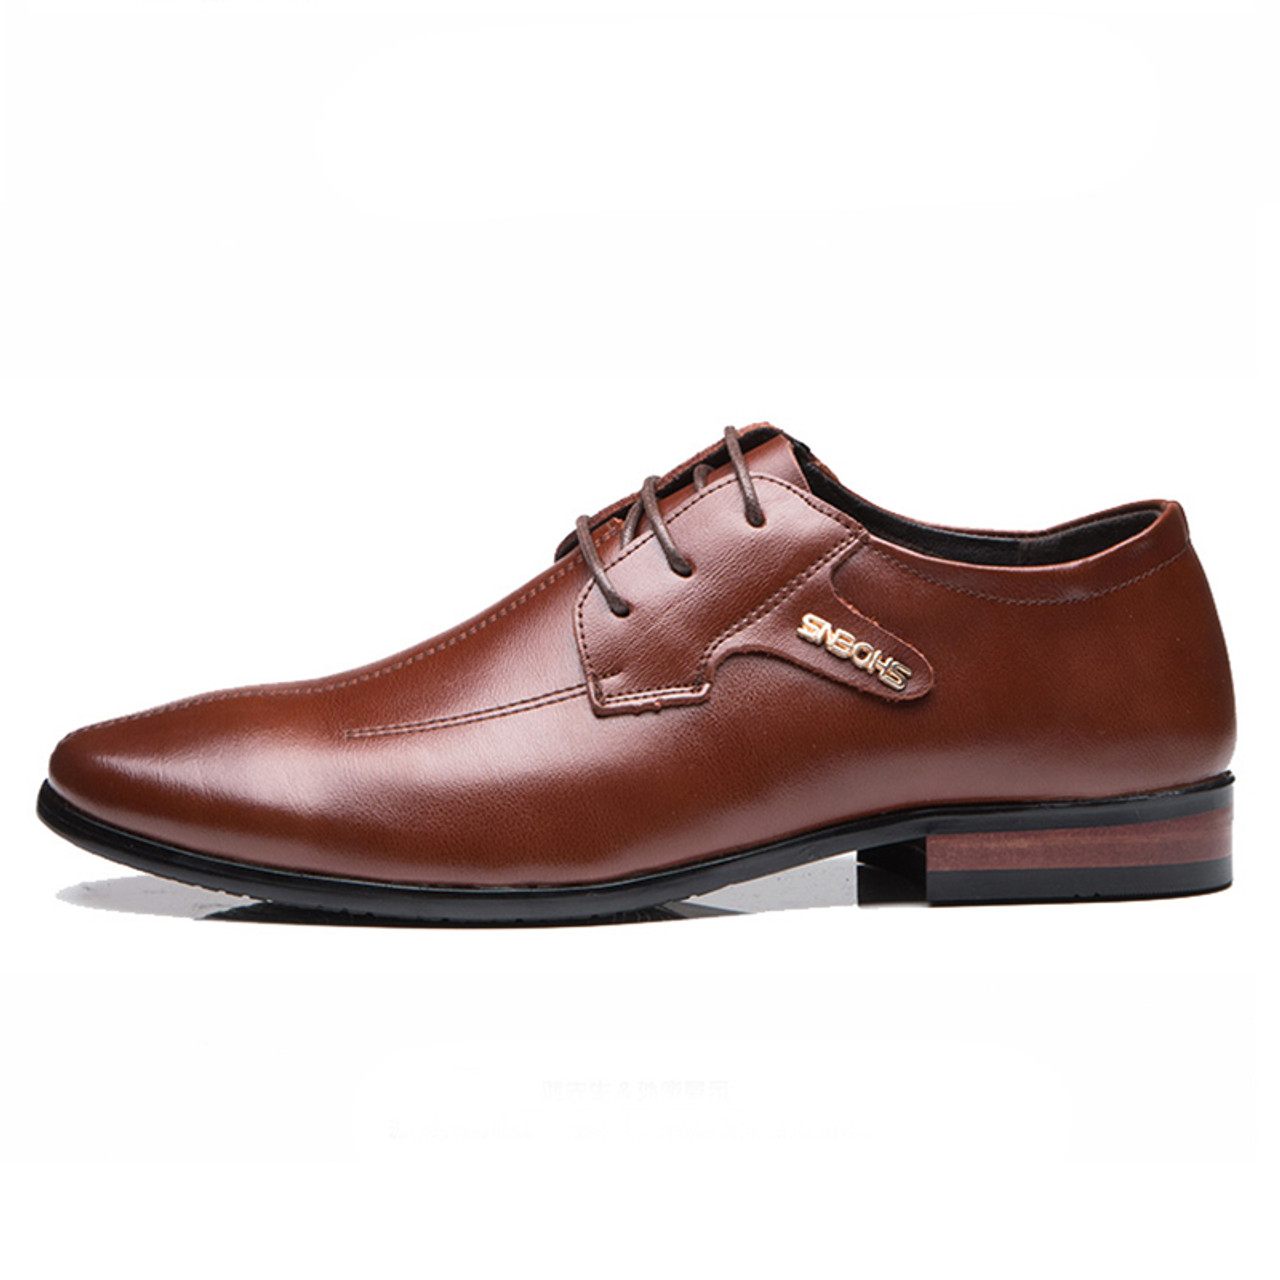 9e0fd4dc48bd Men's Dress Shoes Imported Business Formal Shoes High Quality Leather Shoes  Men Lace-Up Luxury Wedding Oxford Shoes